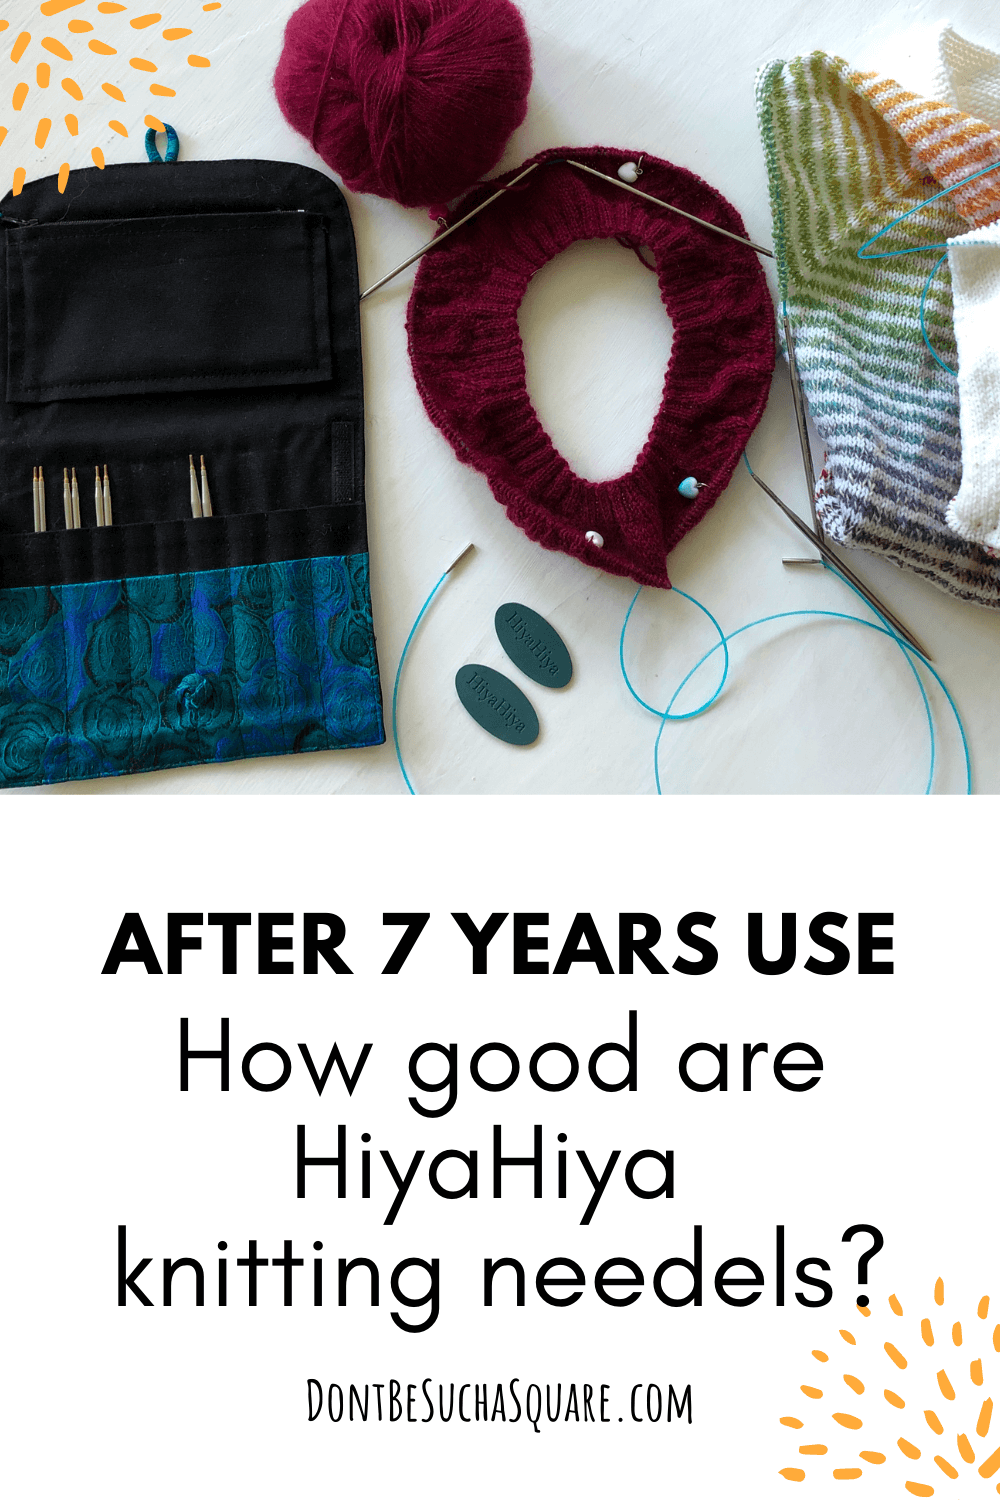 Review: HiyaHiya Interchangeable Knitting needle set. I have been knitting with this set of needles since 2014 (that's over 7 years!)